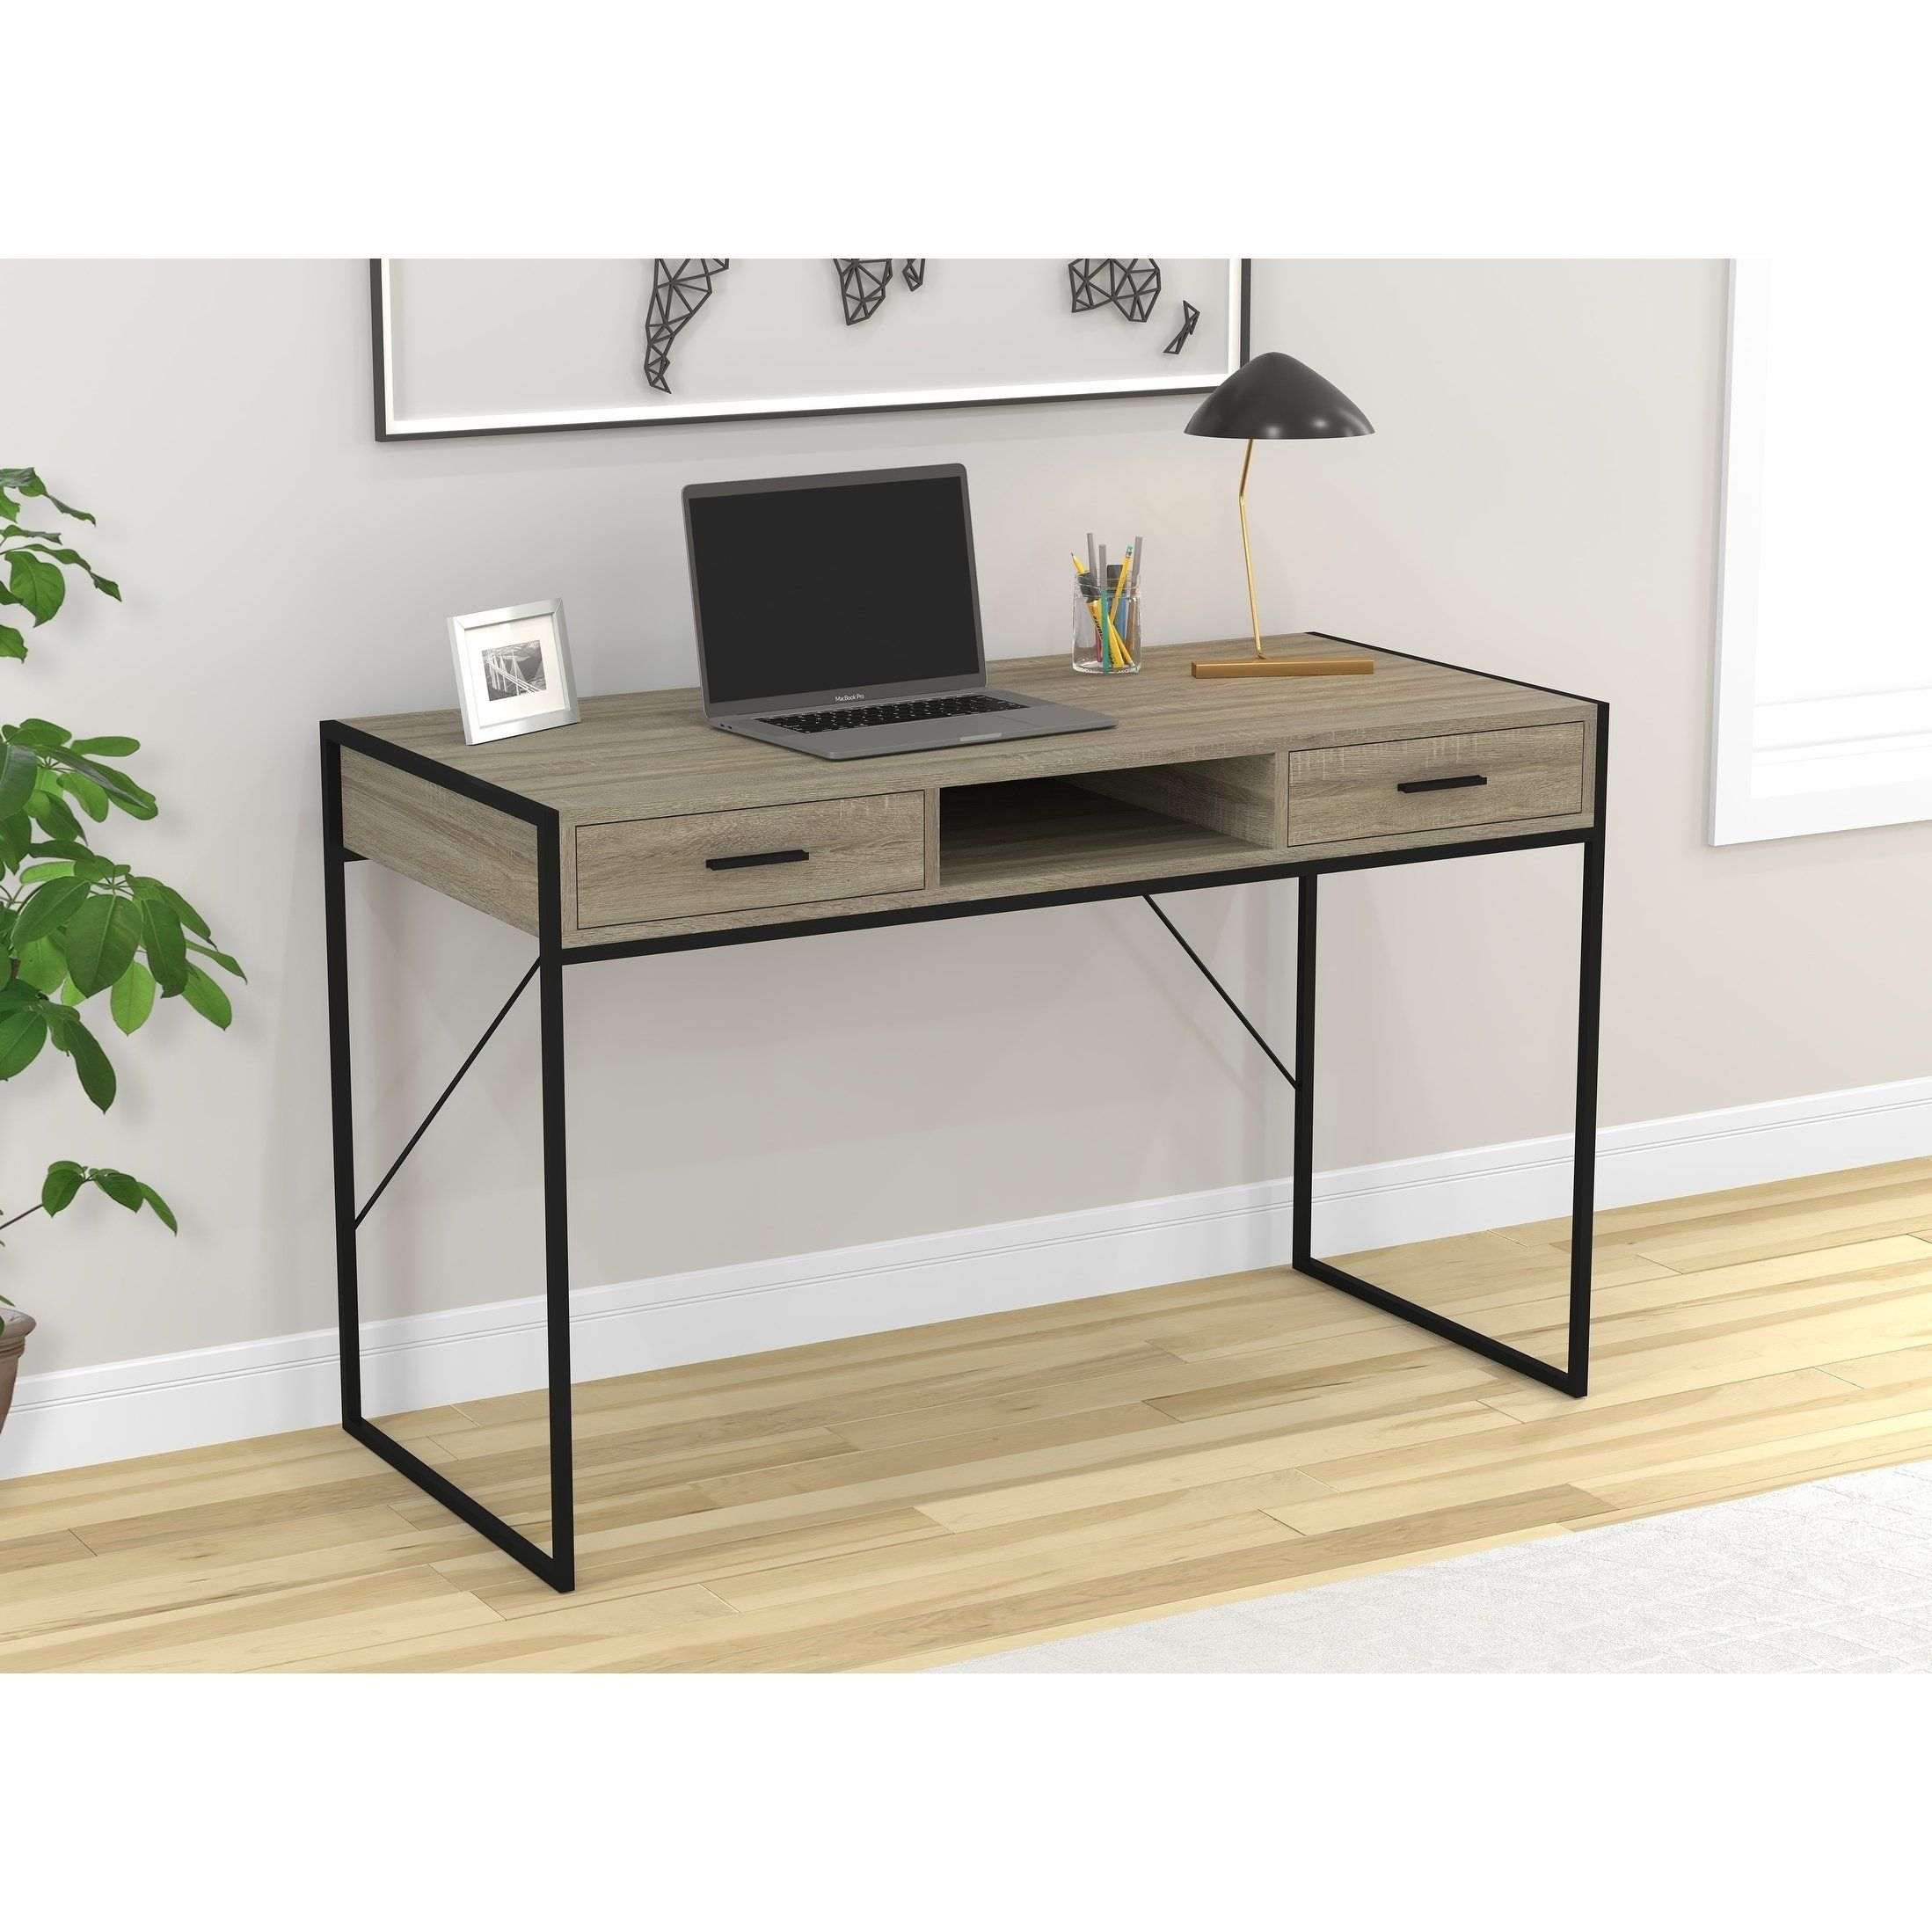 Safdie Co Grey Wood 48 Inch Writing Desk Computer Table Gaming Office Desk Assembly Required Grey Computer Wood And Metal Desk Metal Desks Office Desk